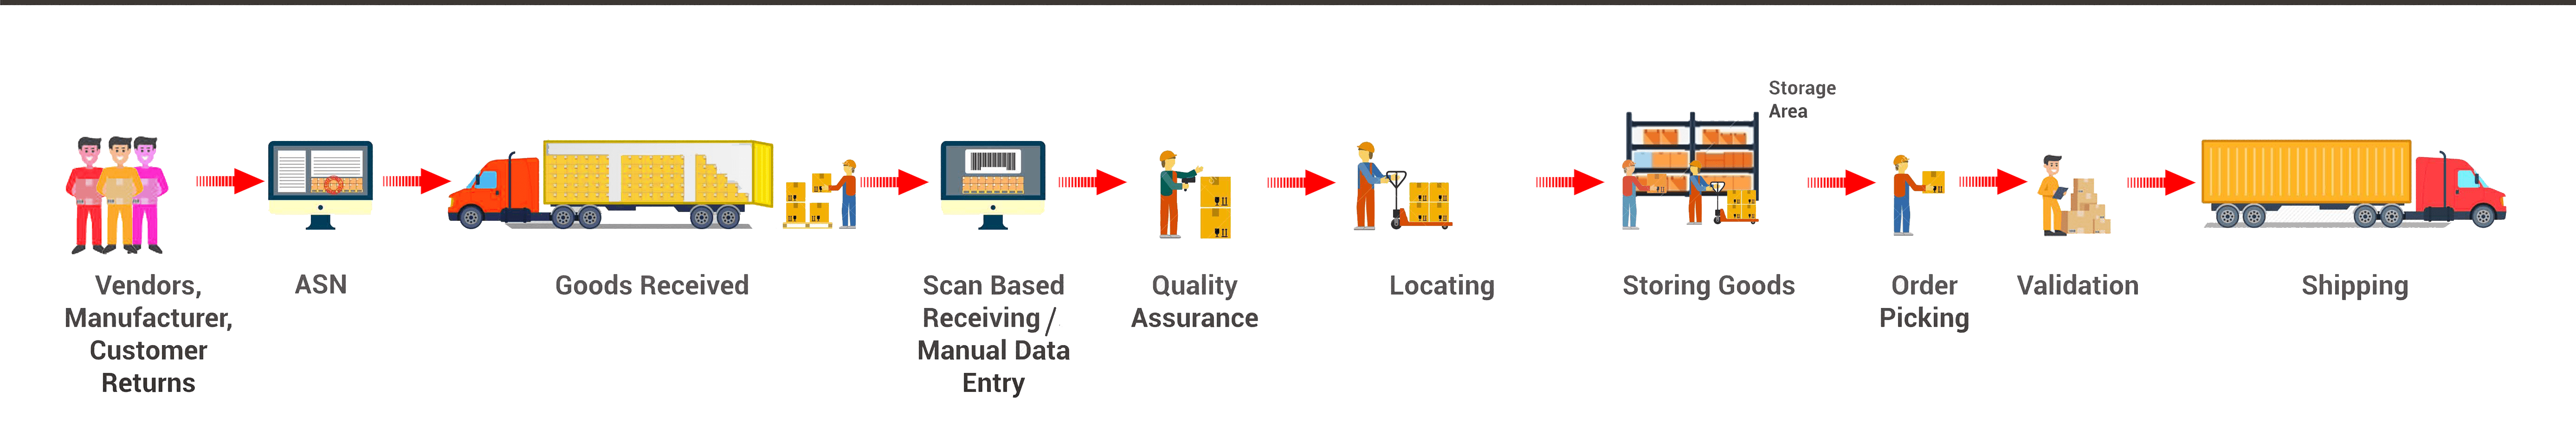 how warehouse management system works